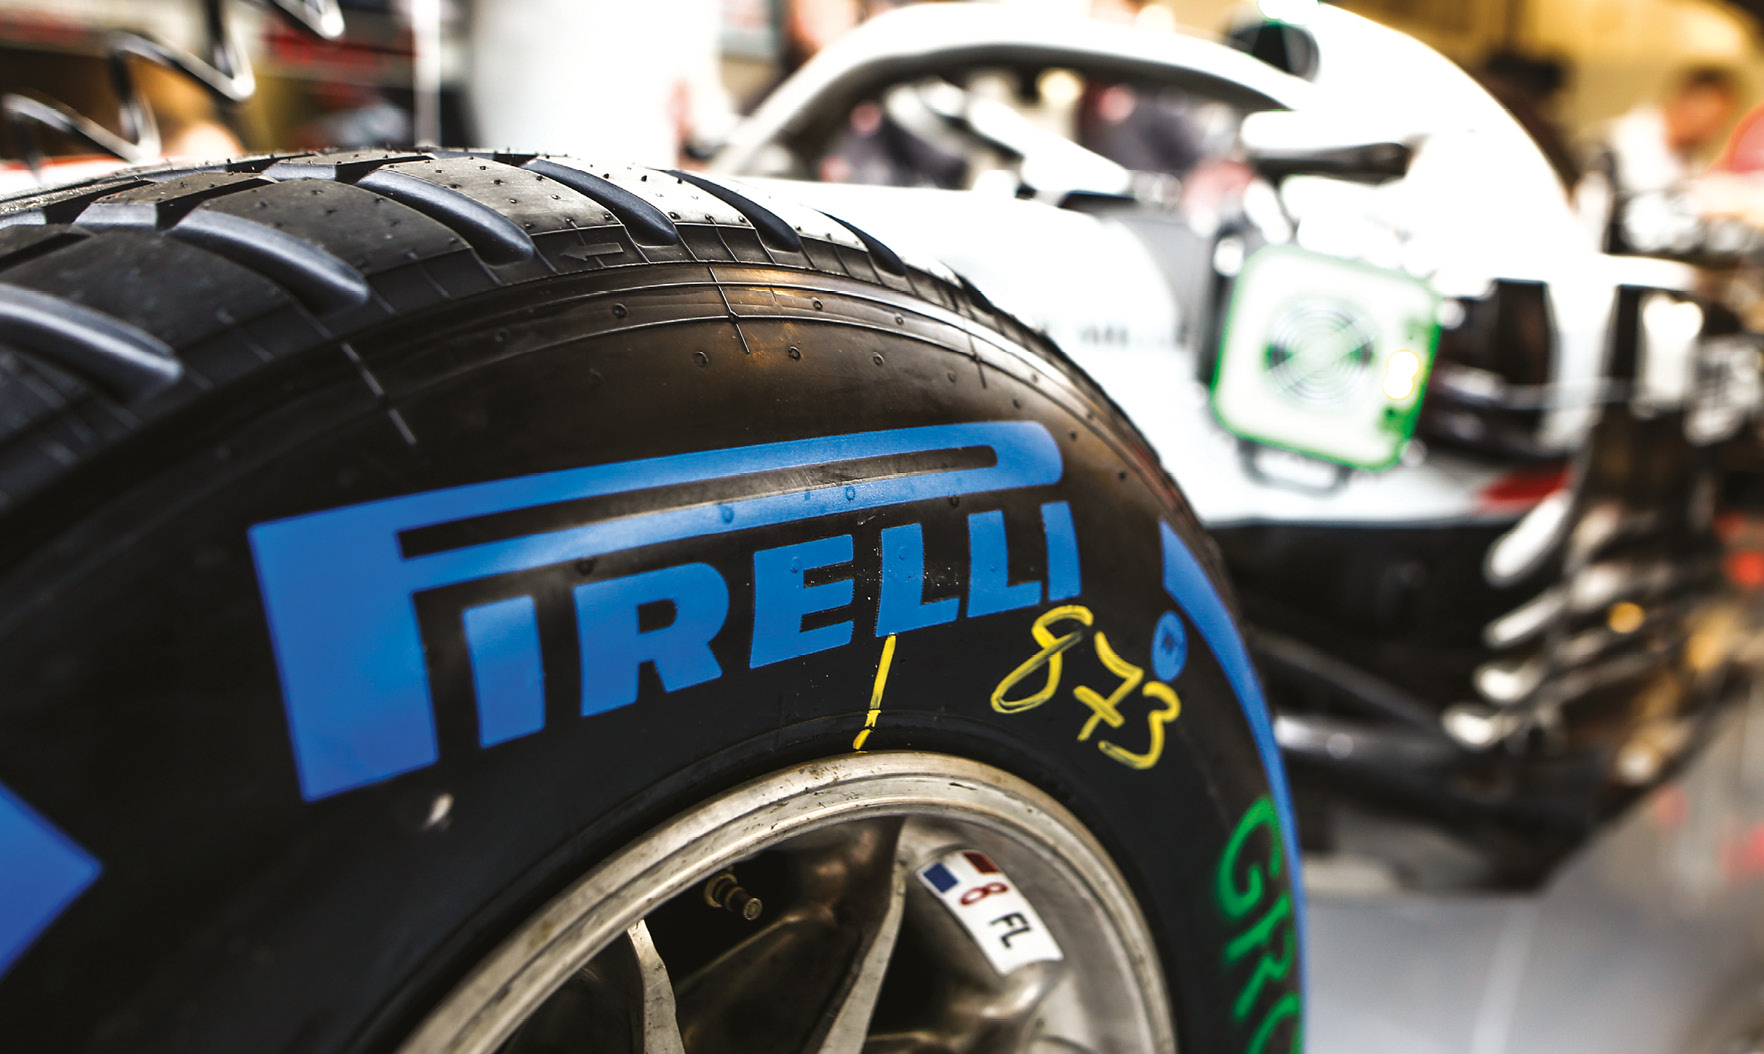 Pirelli has copped some flack from the teams, but is tyre talk just a diversion?